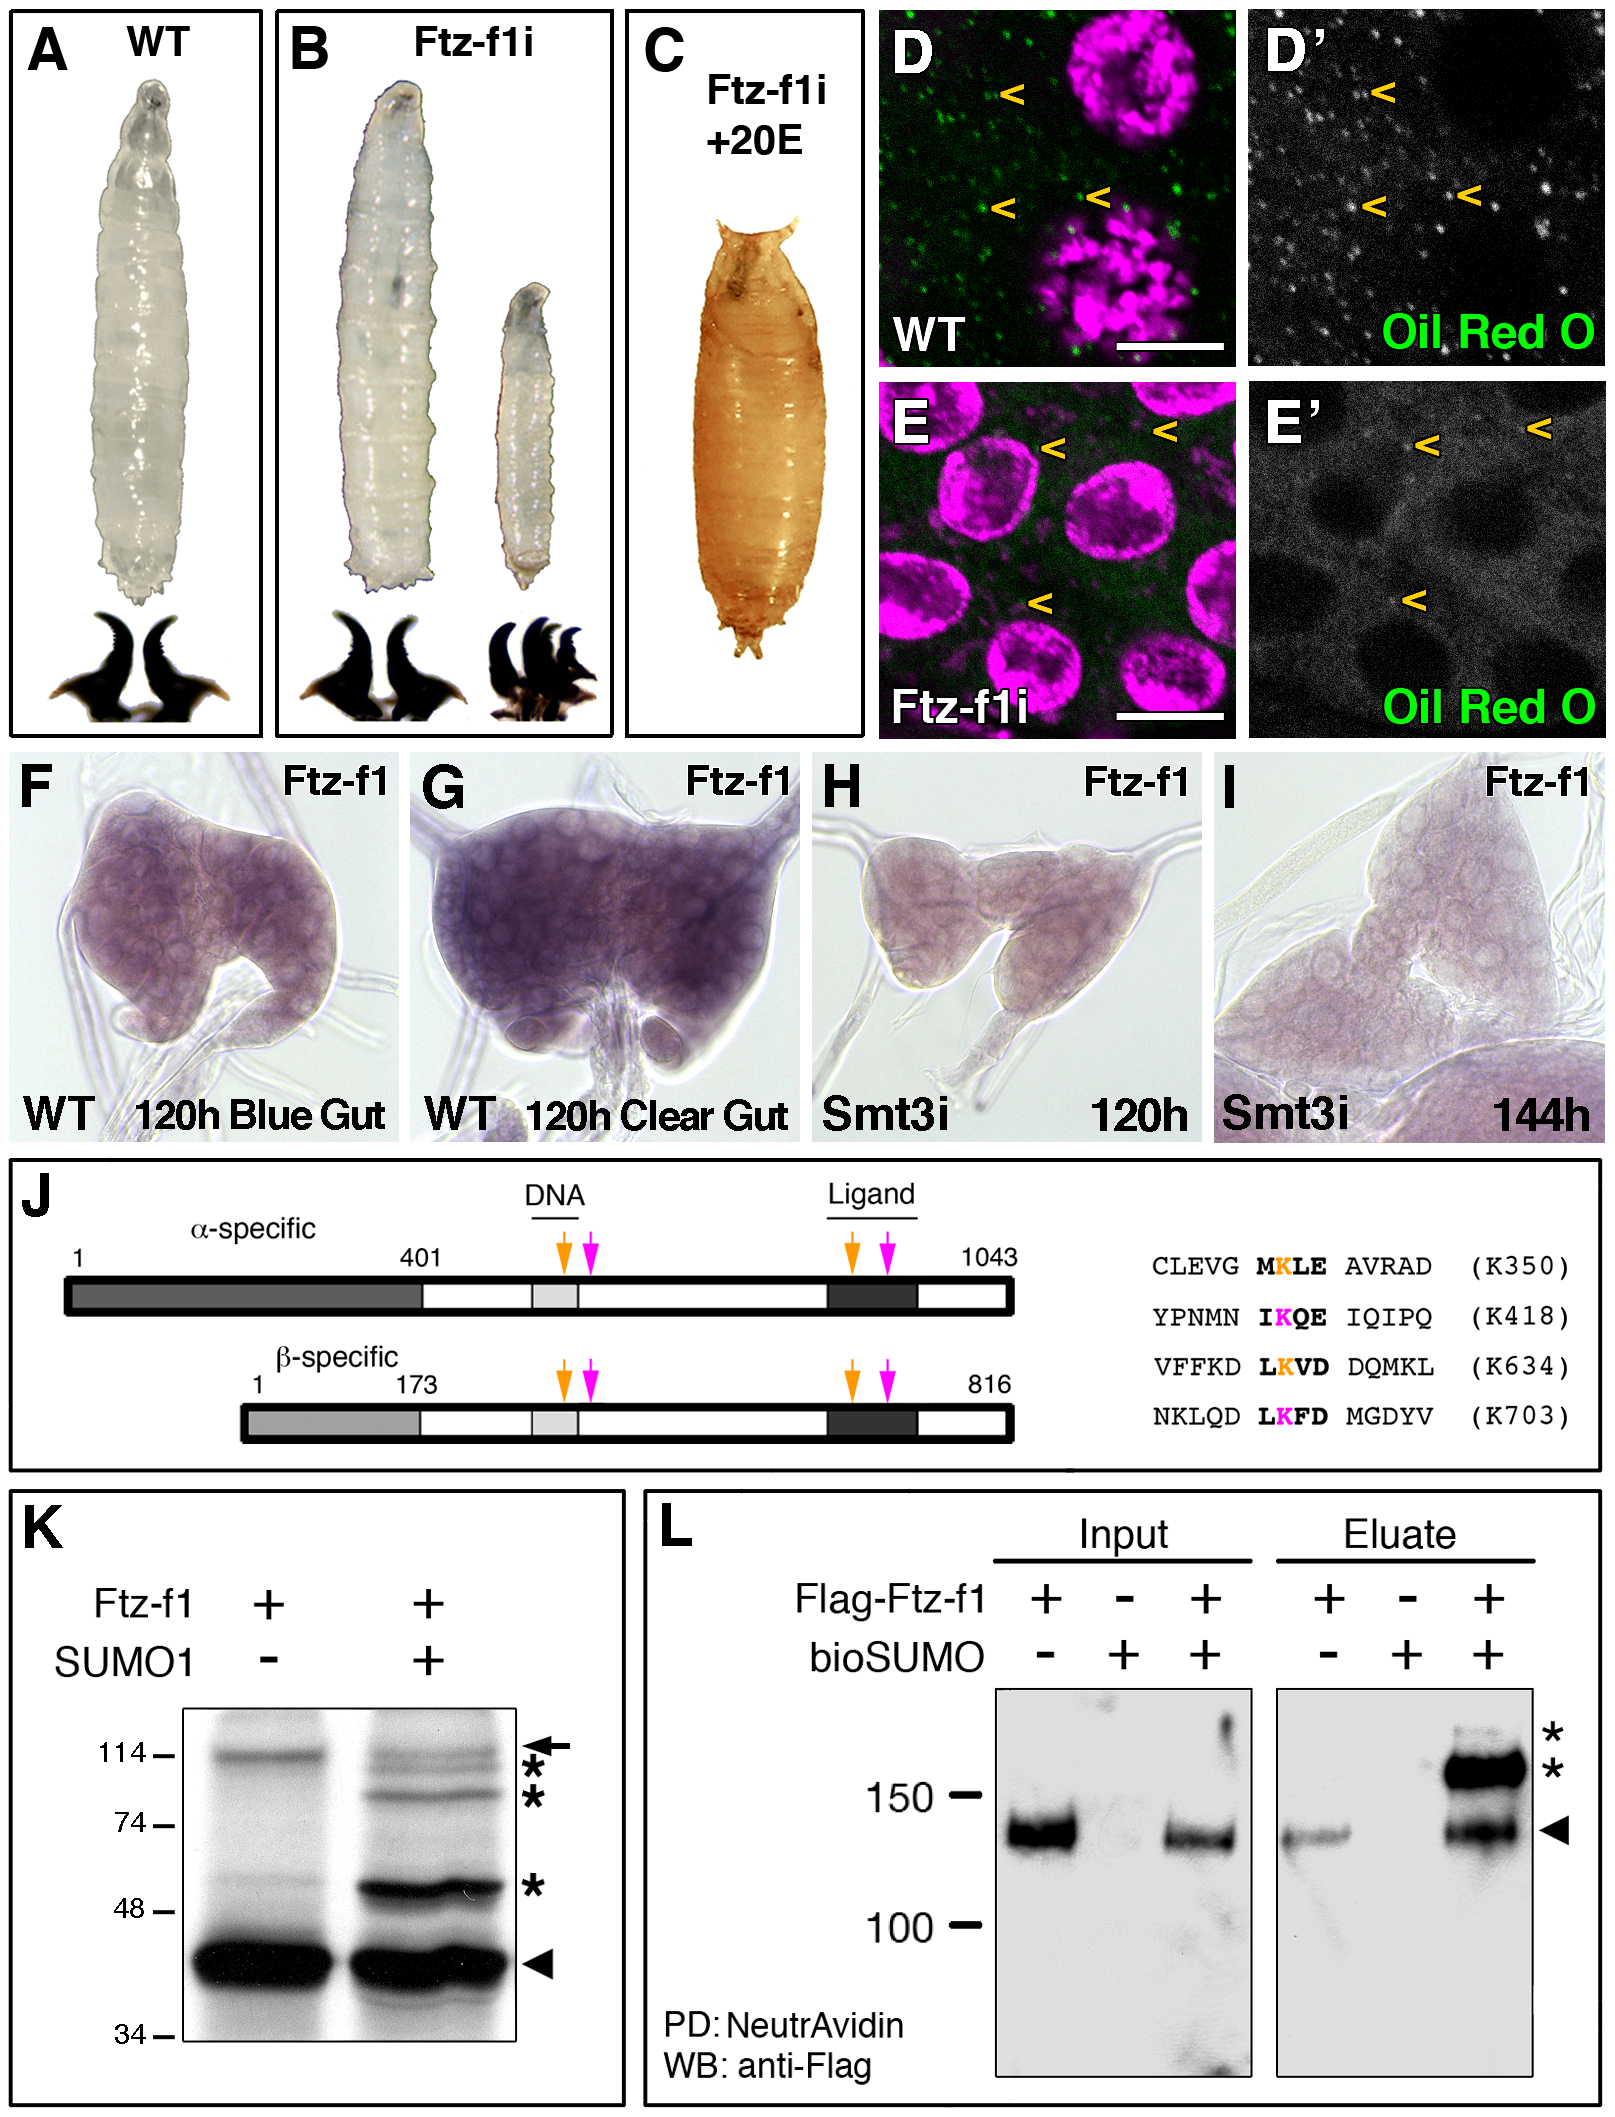 Ftz-f1 is required for pupariation and lipid uptake and is modified by SUMOylation <i>in vivo</i> and <i>in vitro</i>.